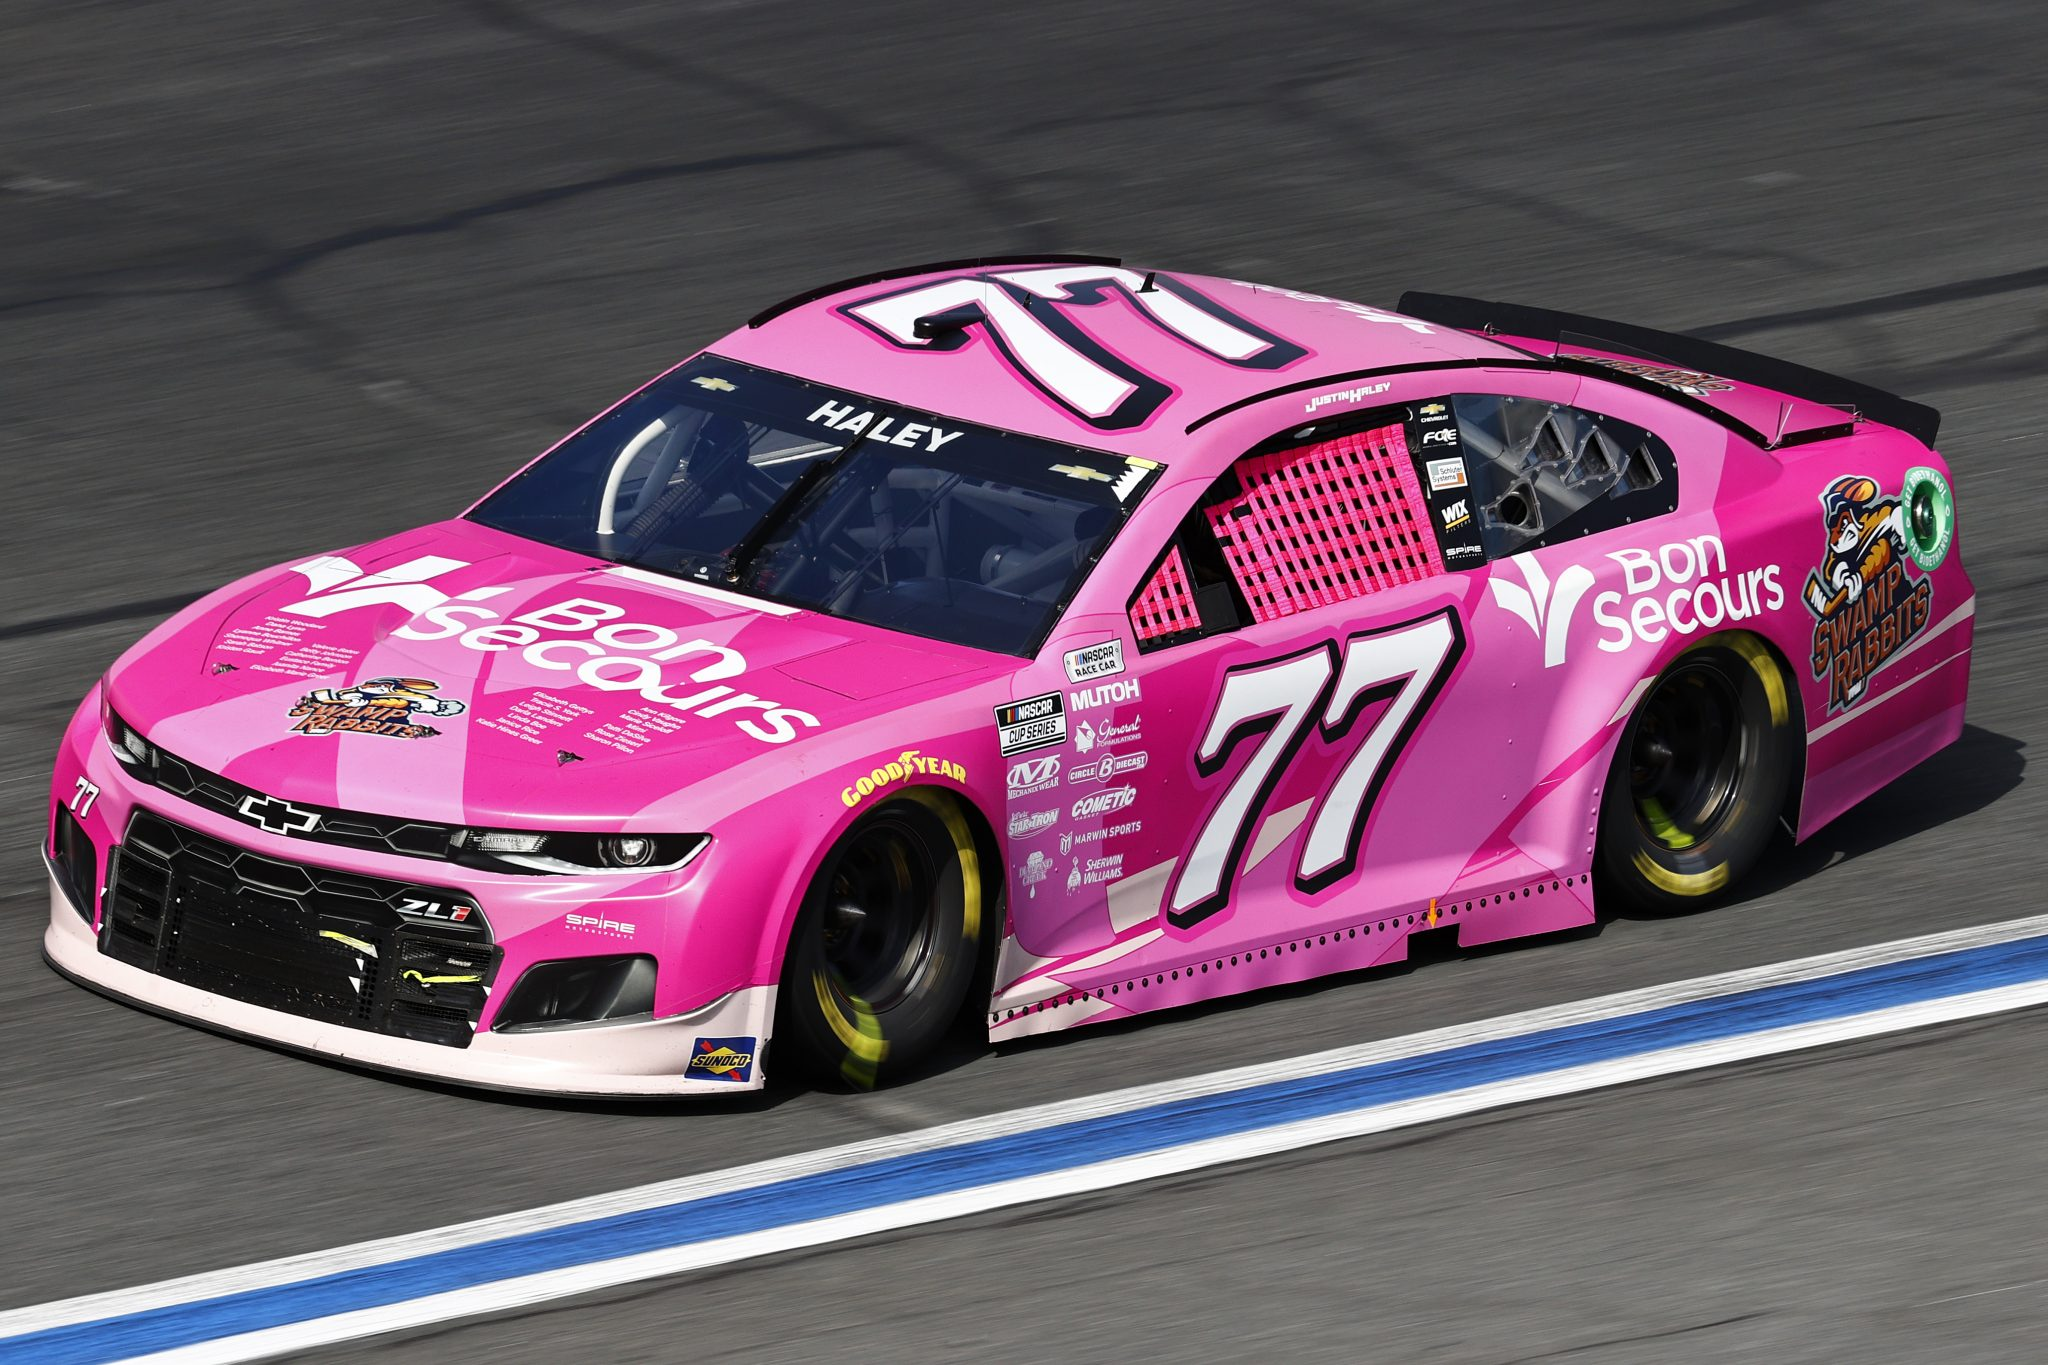 CONCORD, NORTH CAROLINA - OCTOBER 10: Justin Haley, driver of the #77 Bon Secours and Swamp Rabbits Chevrolet, drives during the NASCAR Cup Series Bank of America ROVAL 400 at Charlotte Motor Speedway on October 10, 2021 in Concord, North Carolina. (Photo by Jared C. Tilton/Getty Images) | Getty Images